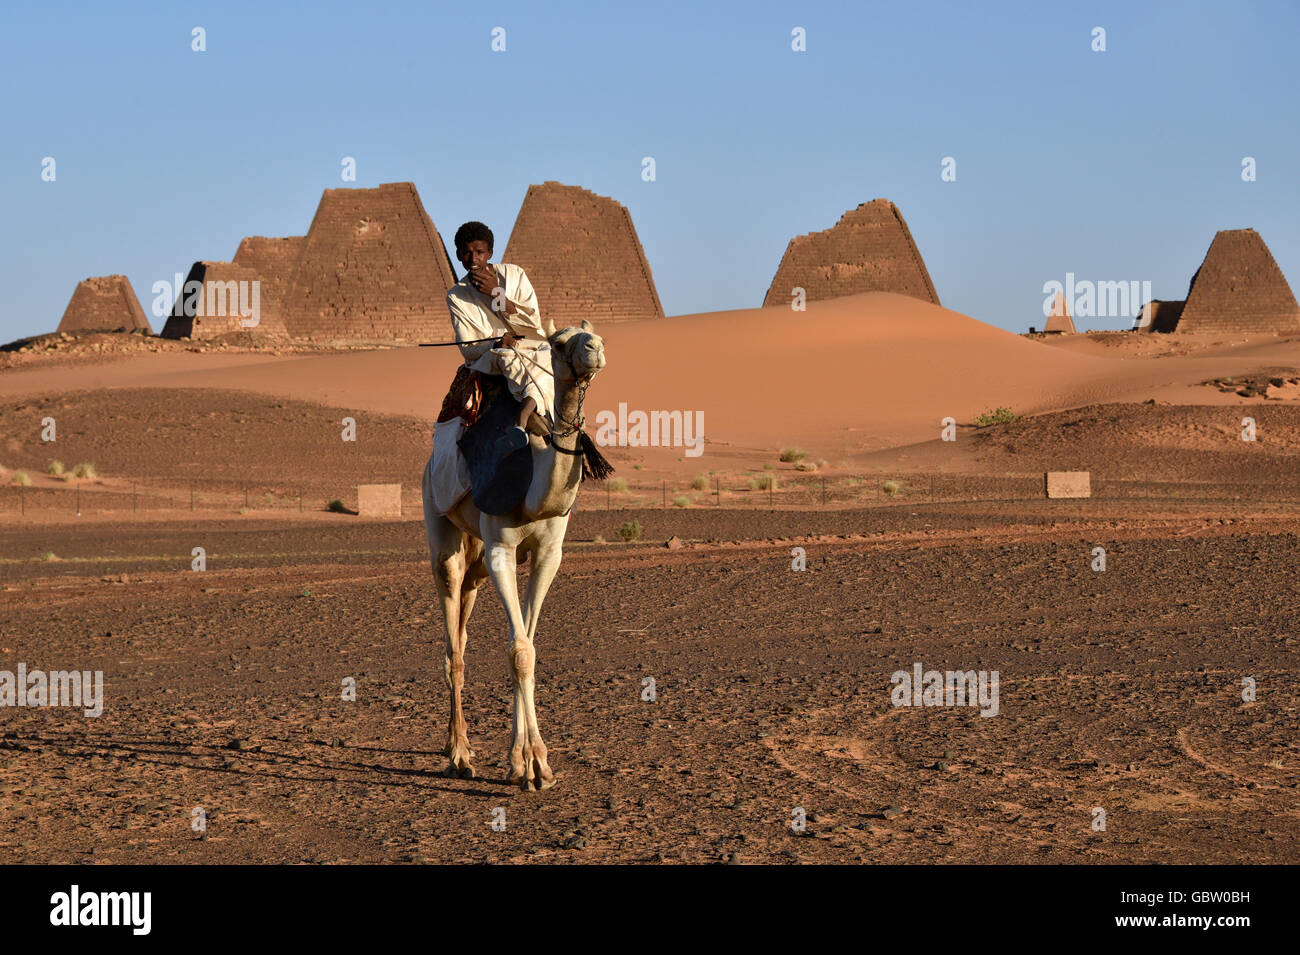 Africa, Sudan, Nubia, nomad with dromedary, Pyramids of Meroe in background - Stock Image